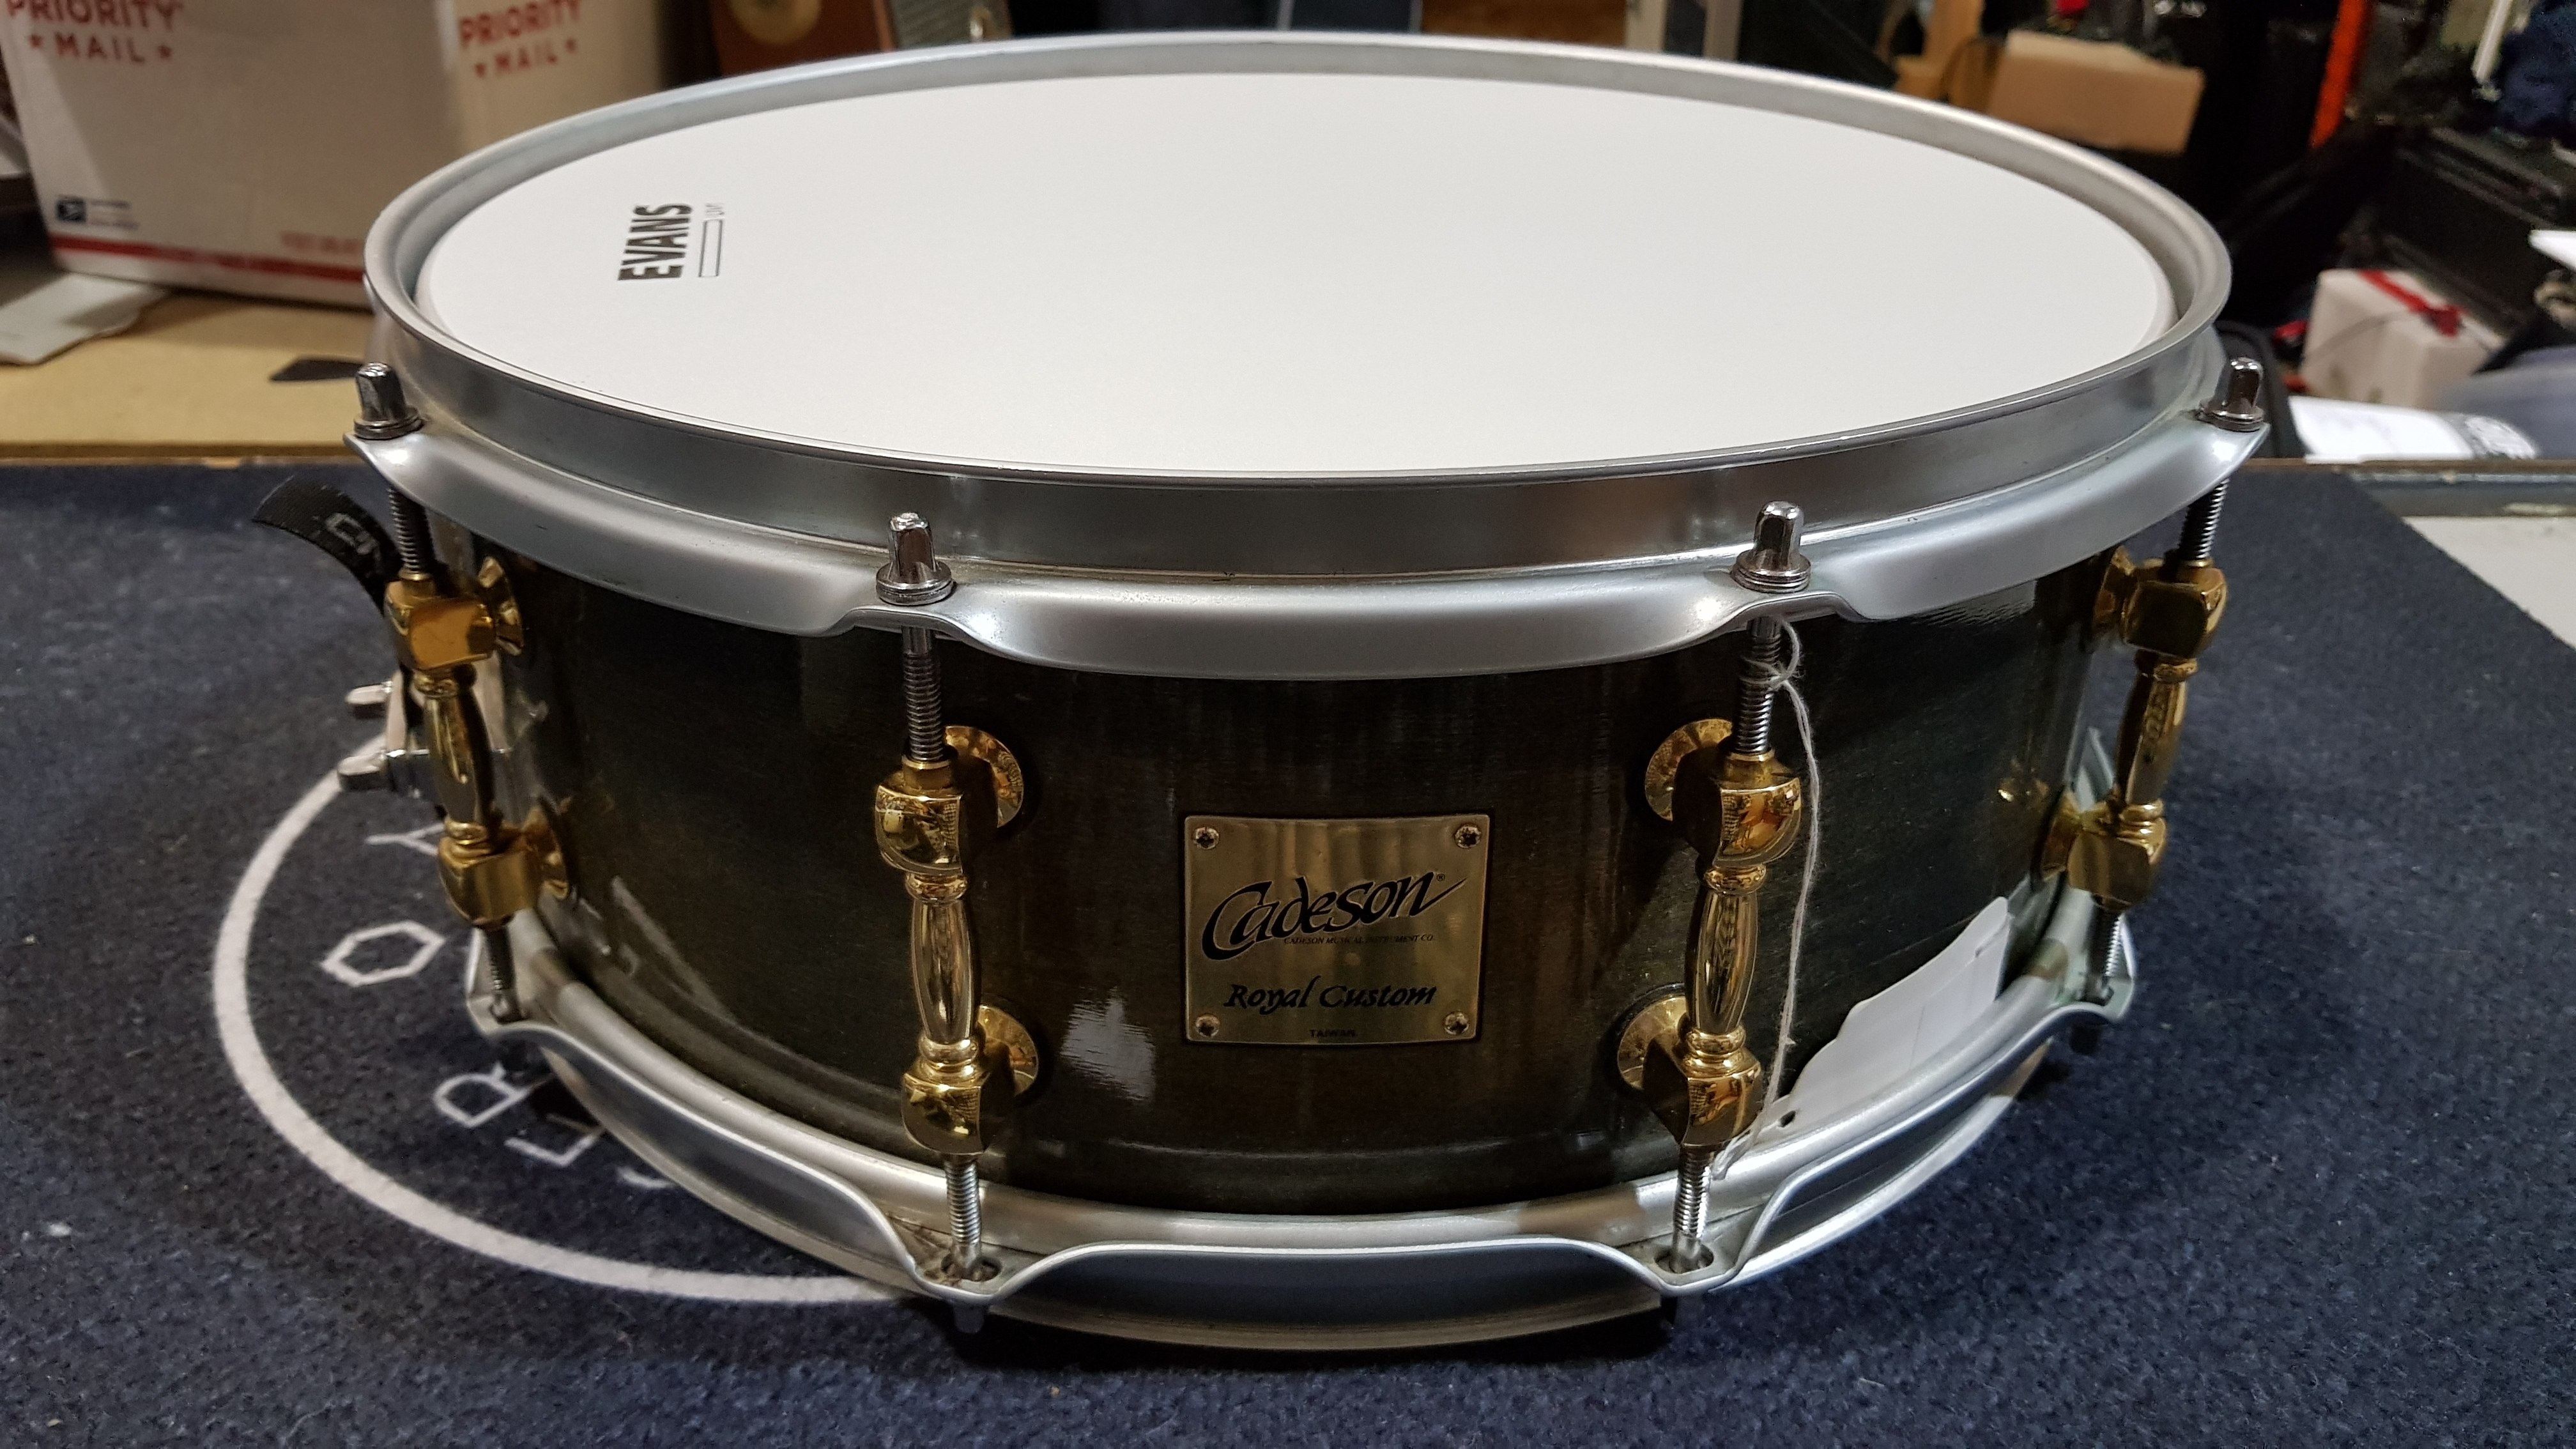 CADESON ROYAL CUSTOM Snare Drum 14